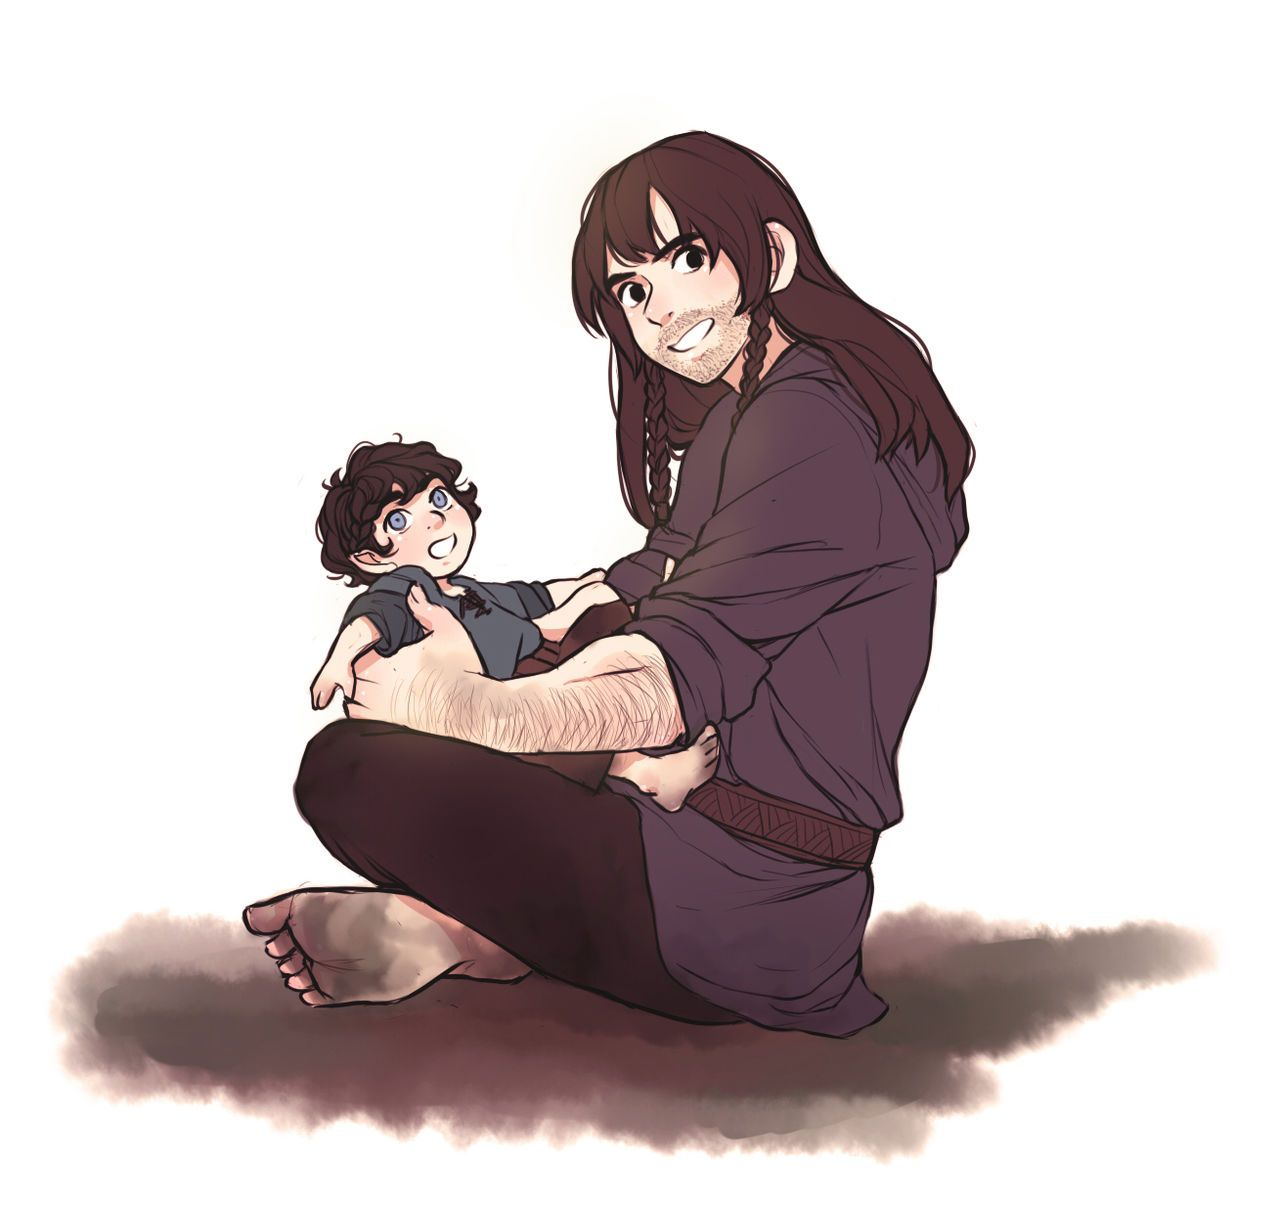 Kili with kid!Frodo. This is so adorable